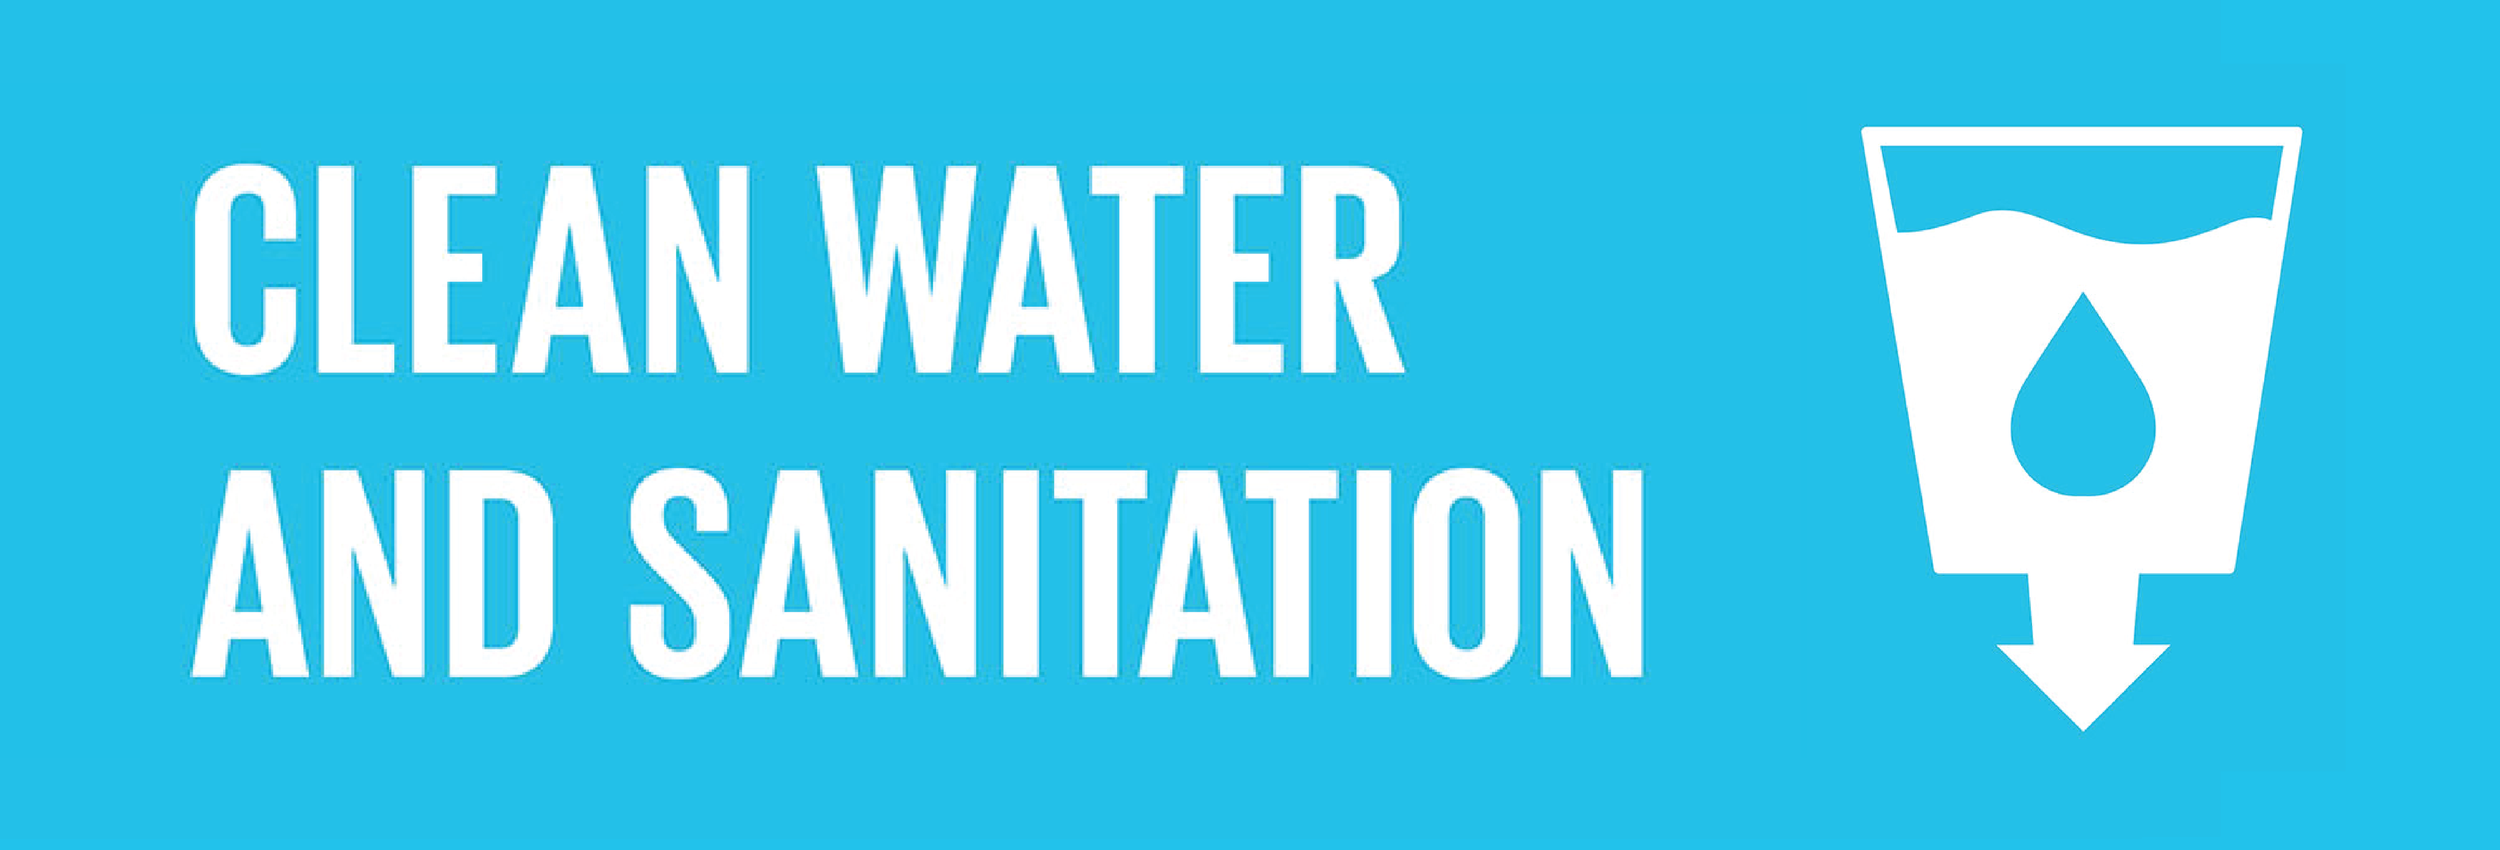 Clean Water-01.png